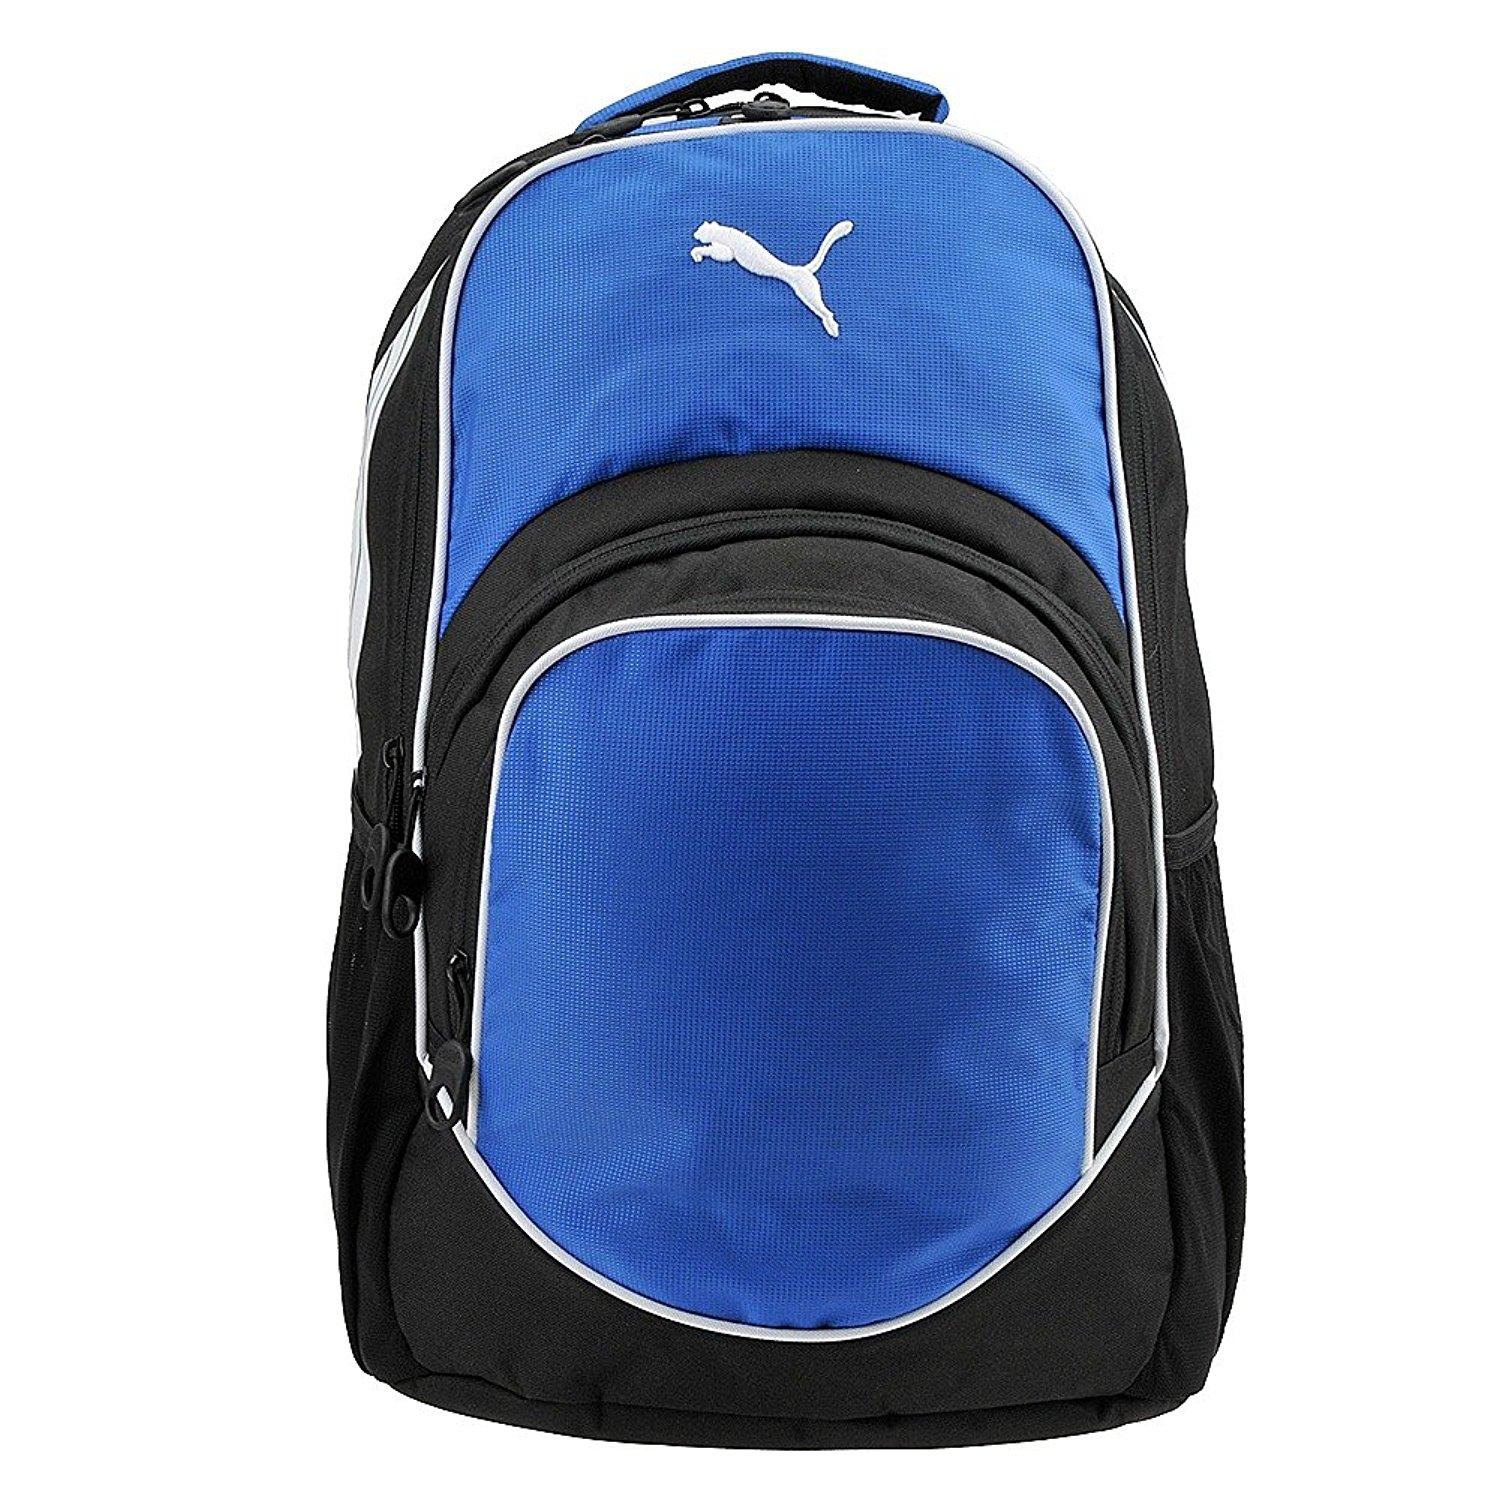 870f85b5f Cheap Backpack Puma, find Backpack Puma deals on line at Alibaba.com